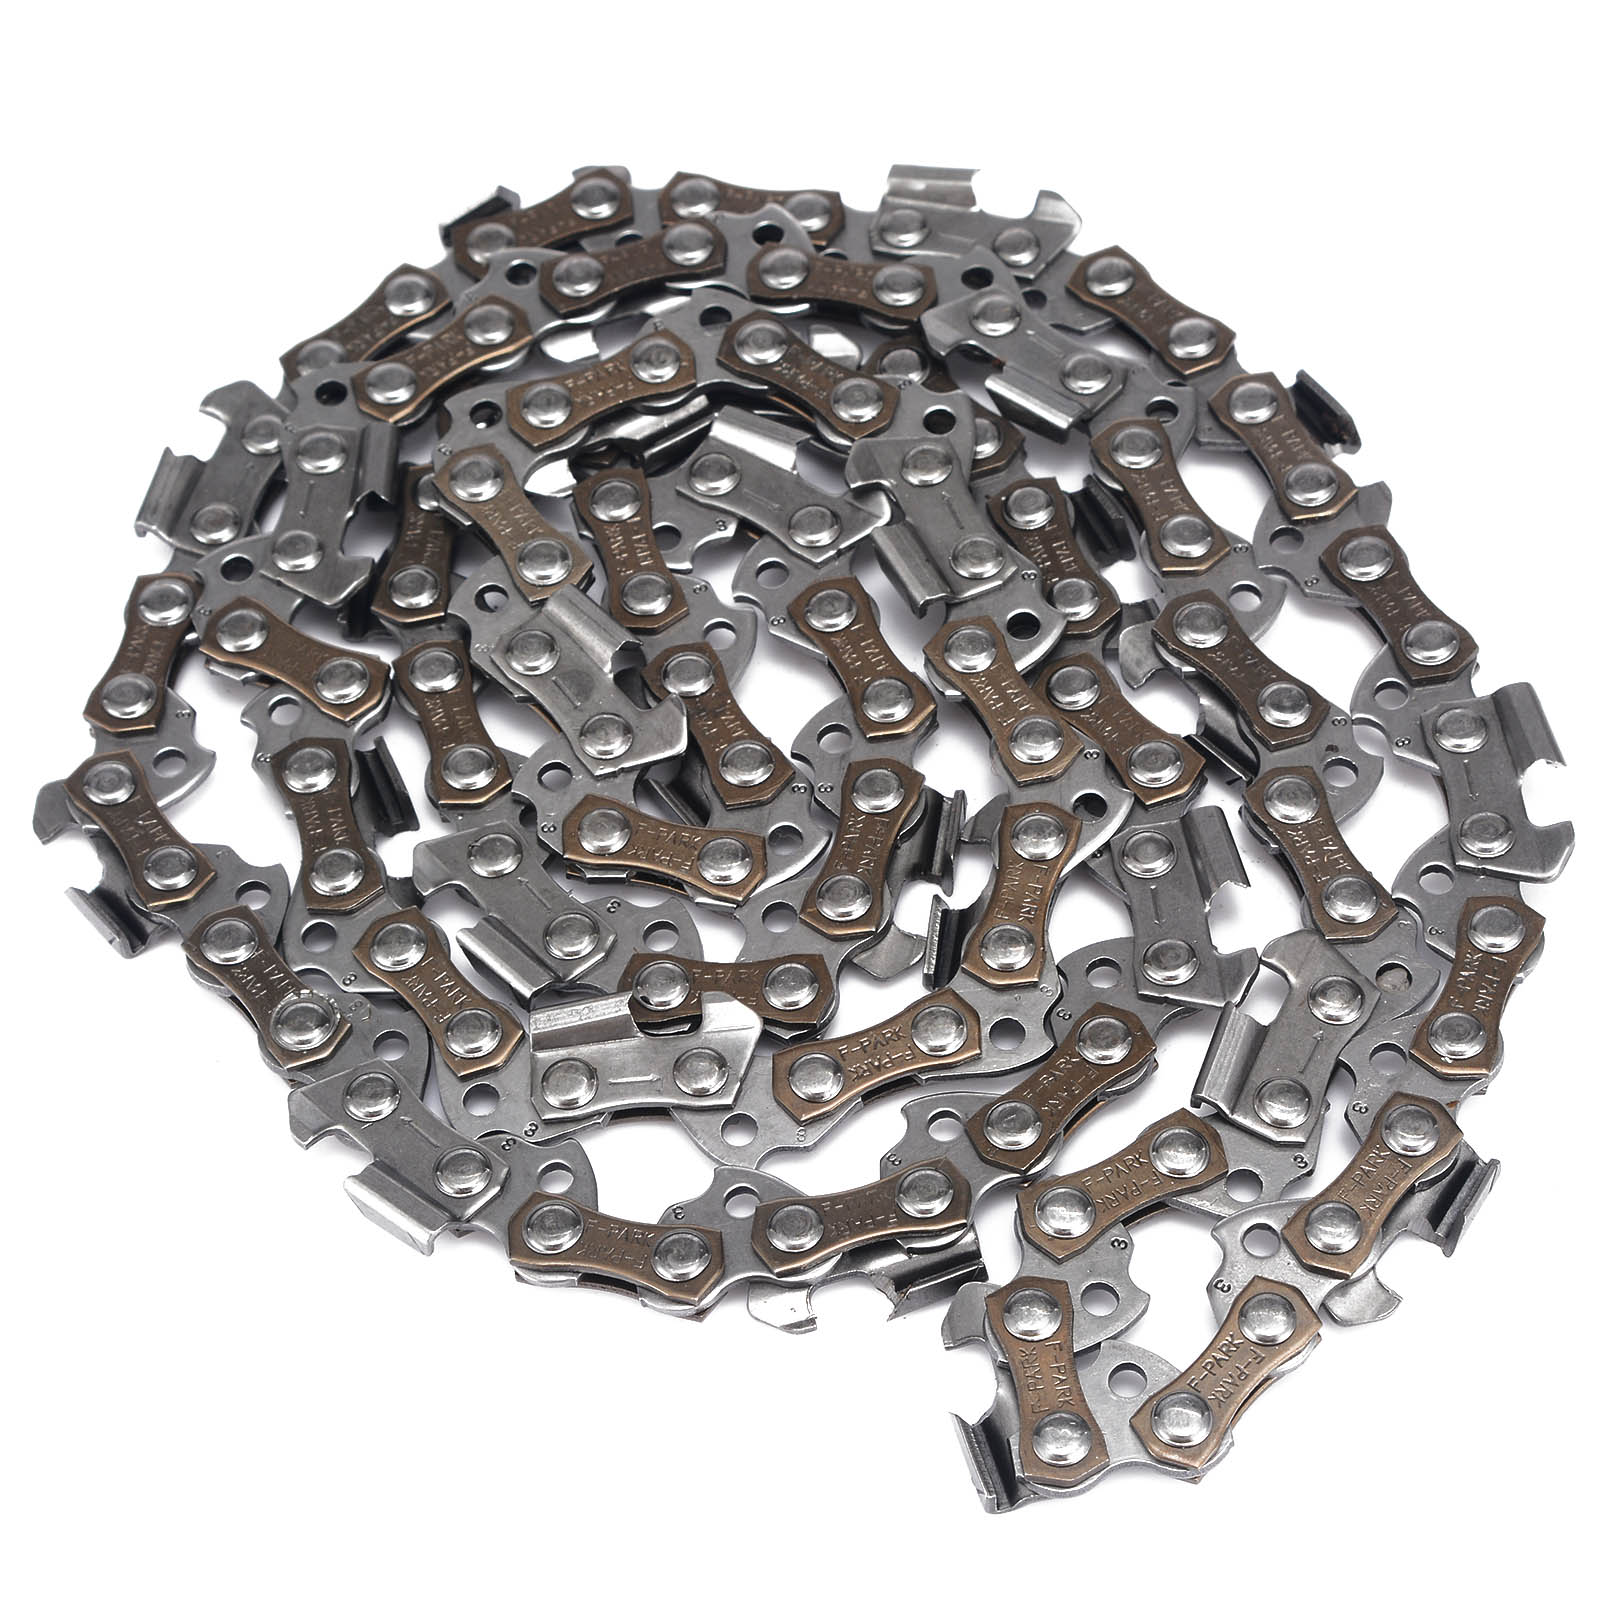 16 Replacement Chainsaw Saw Chain 3/8LP .050 Gauge 58DL Drive Link Chain Saw Blades for Wood Cutting Chain Saw Parts 2 pcs gear sprockets drive replacement chainsaw chain drive sprocket 221514 8 for makita 5016b 5012b electric chain saw